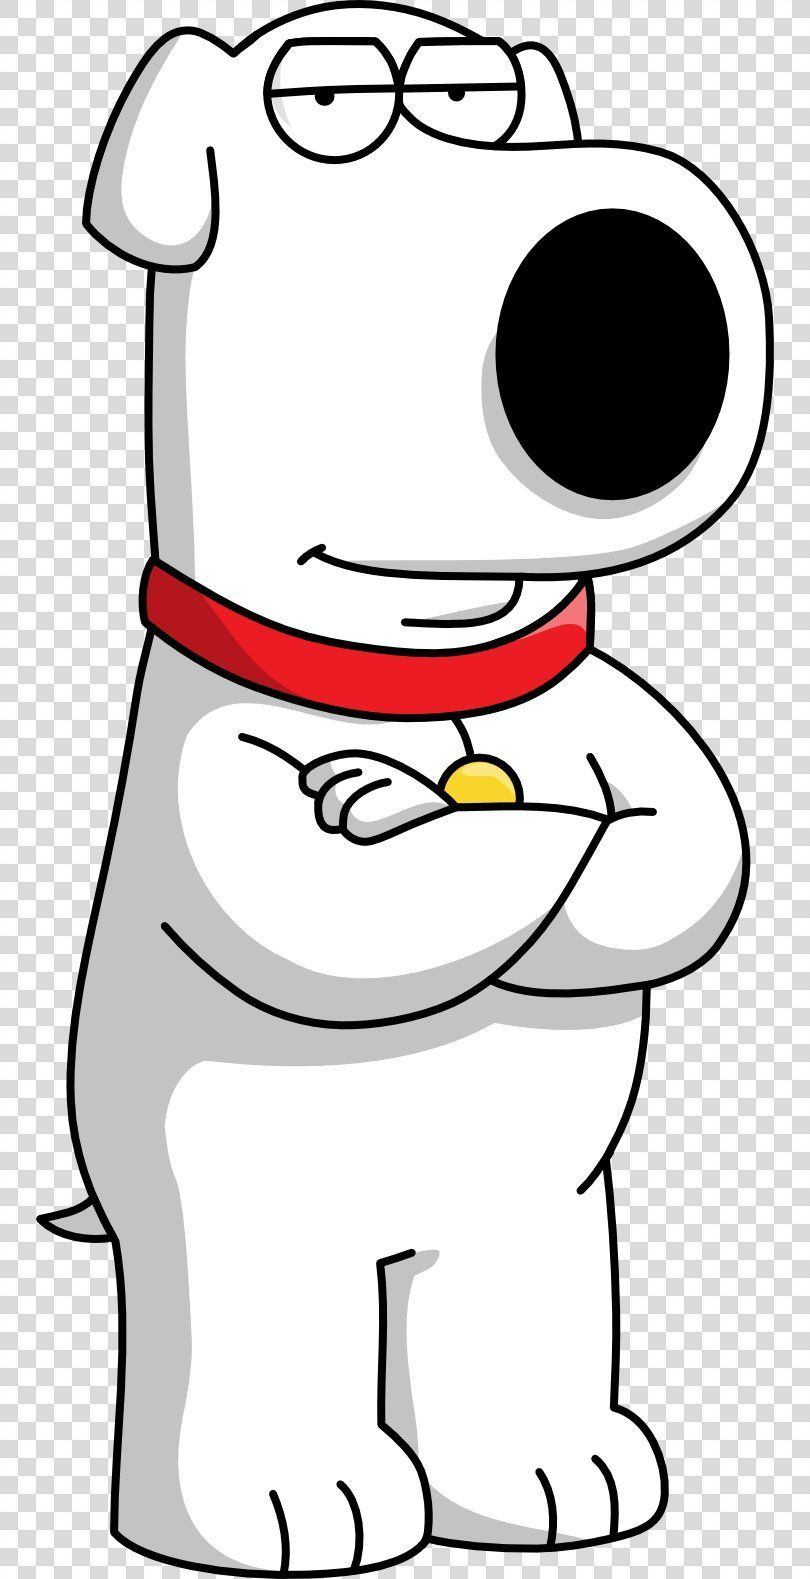 Pin By Gloria Taylor On Family Guy In 2020 Stewie Griffin Family Guy Stewie Griffin Family